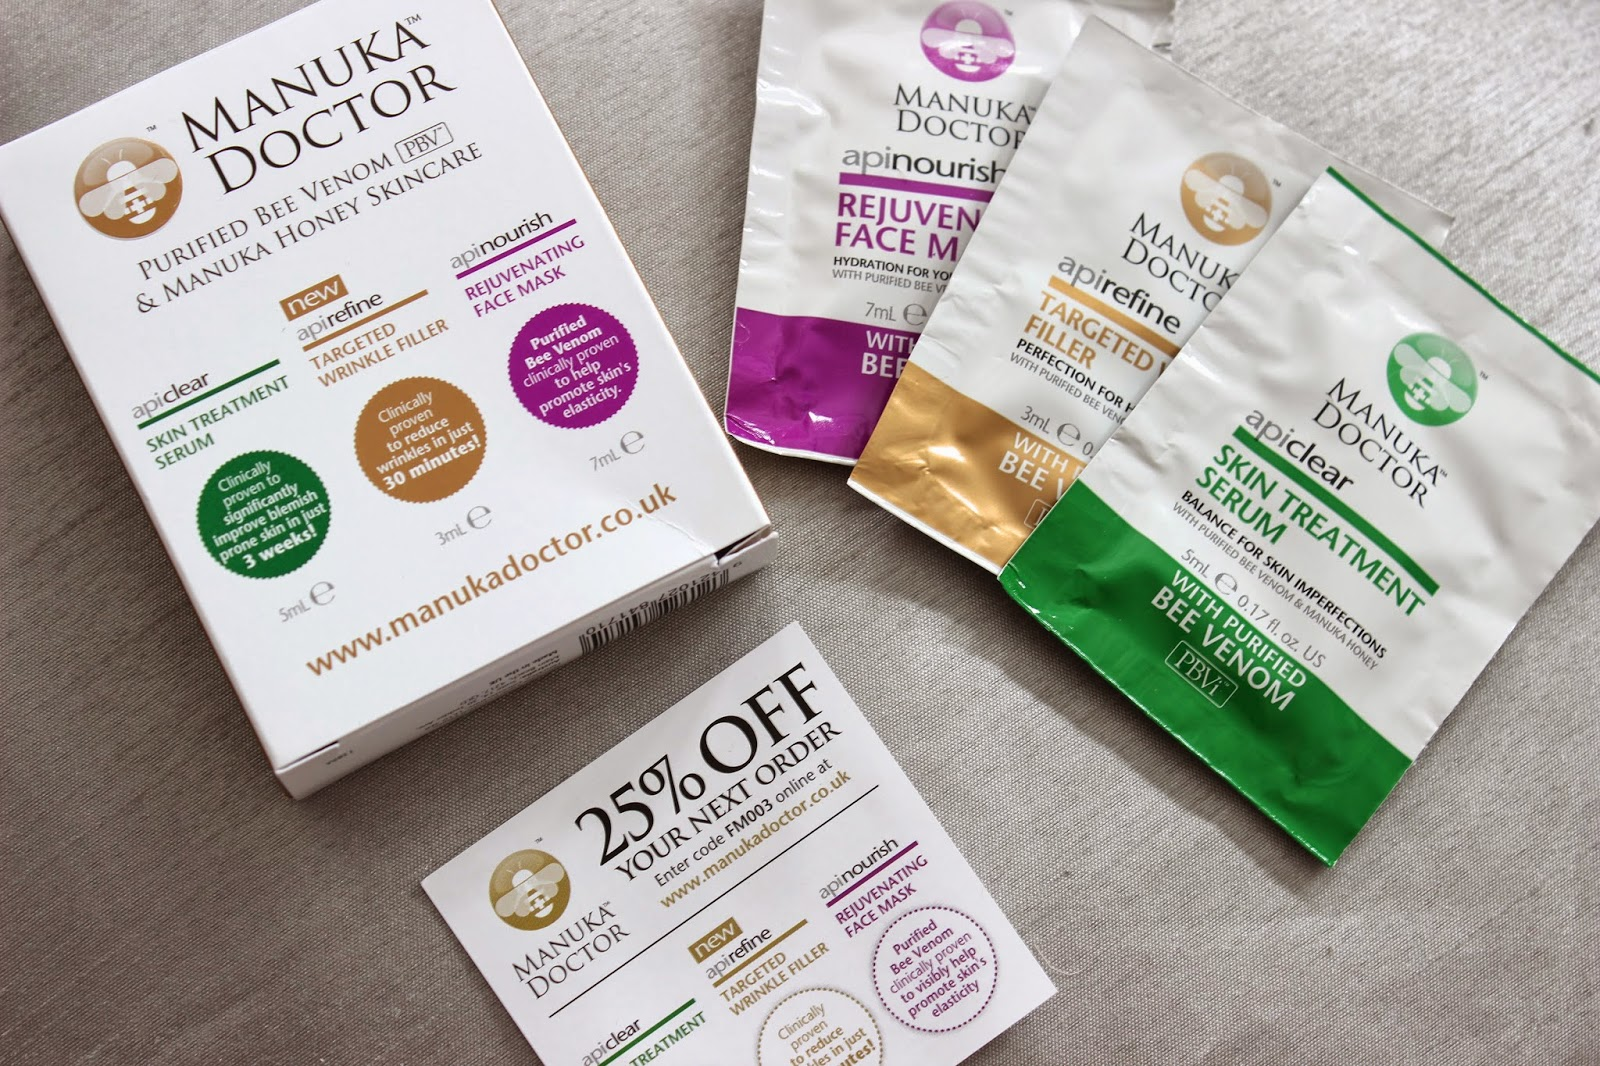 Manuka Doctor FREE Mini Hero Kit!